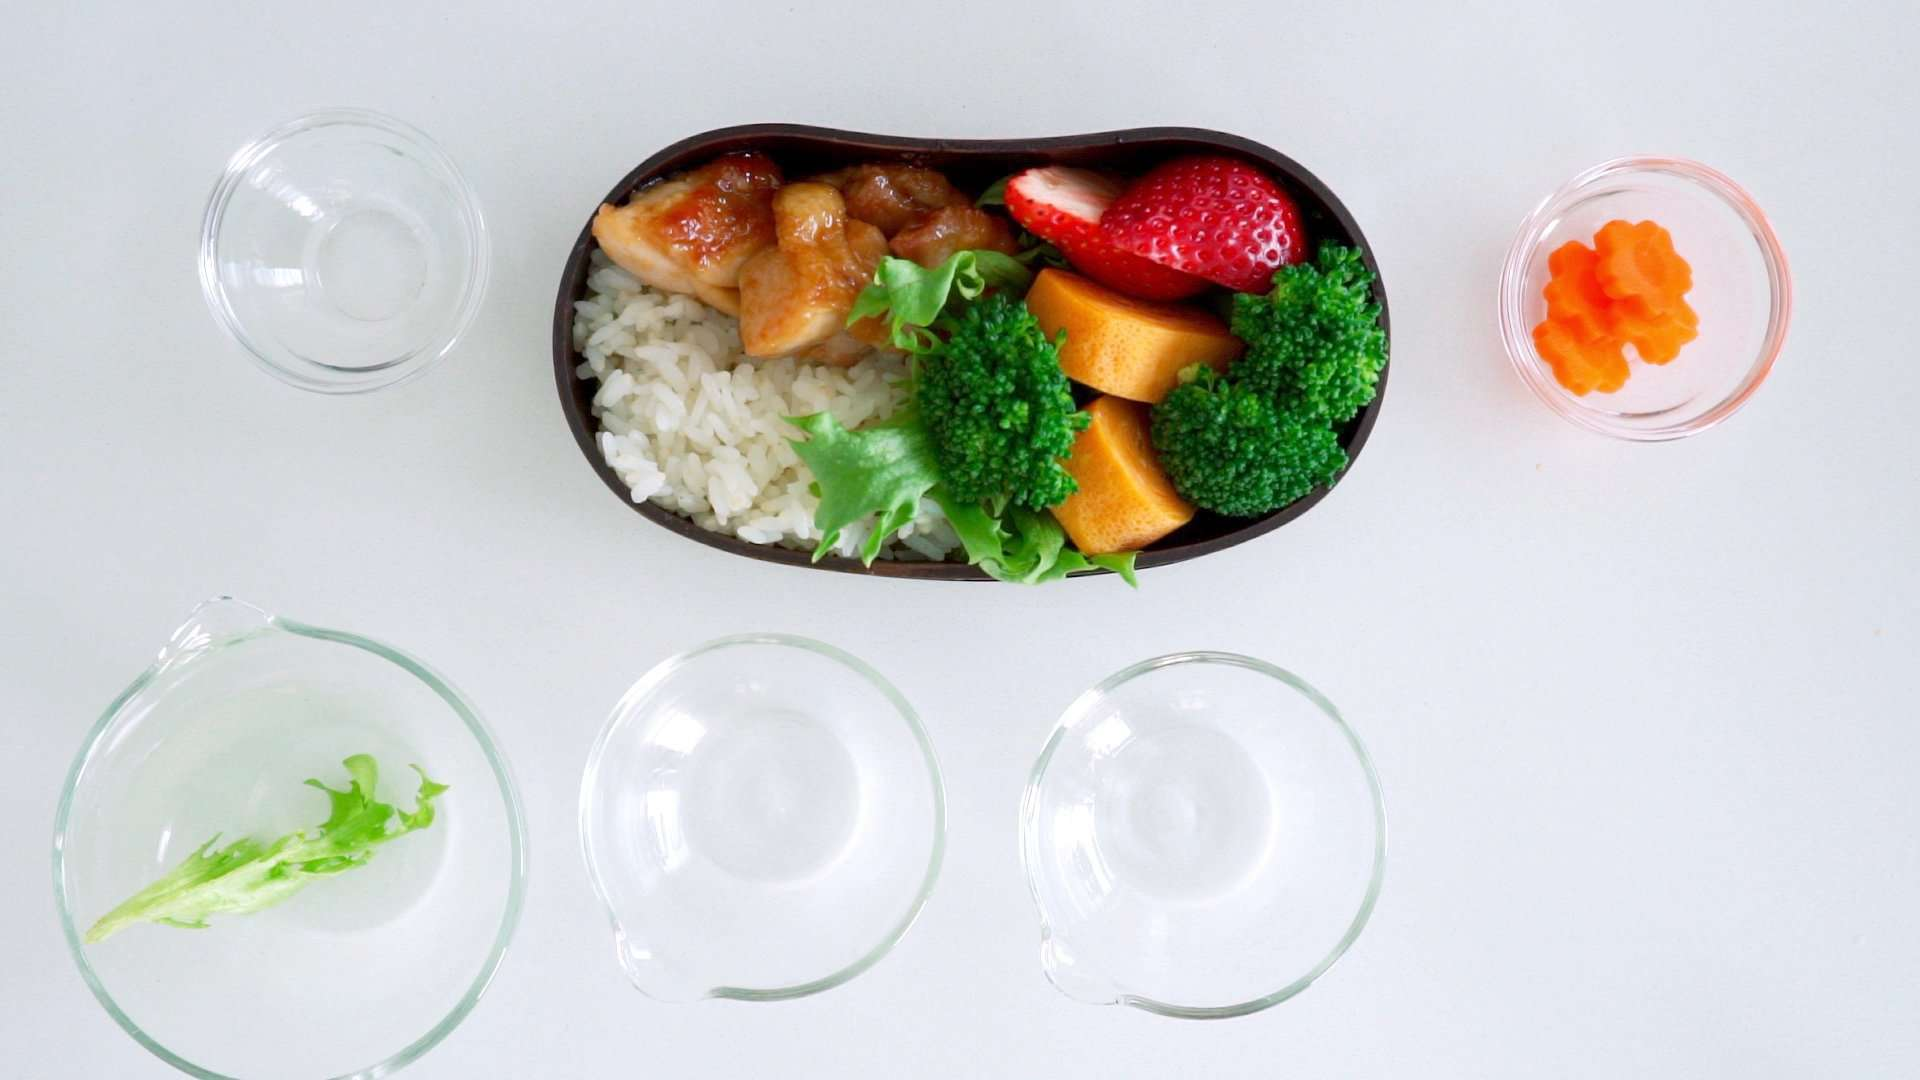 A strawberry is added to the Ginger Chicken Bento.